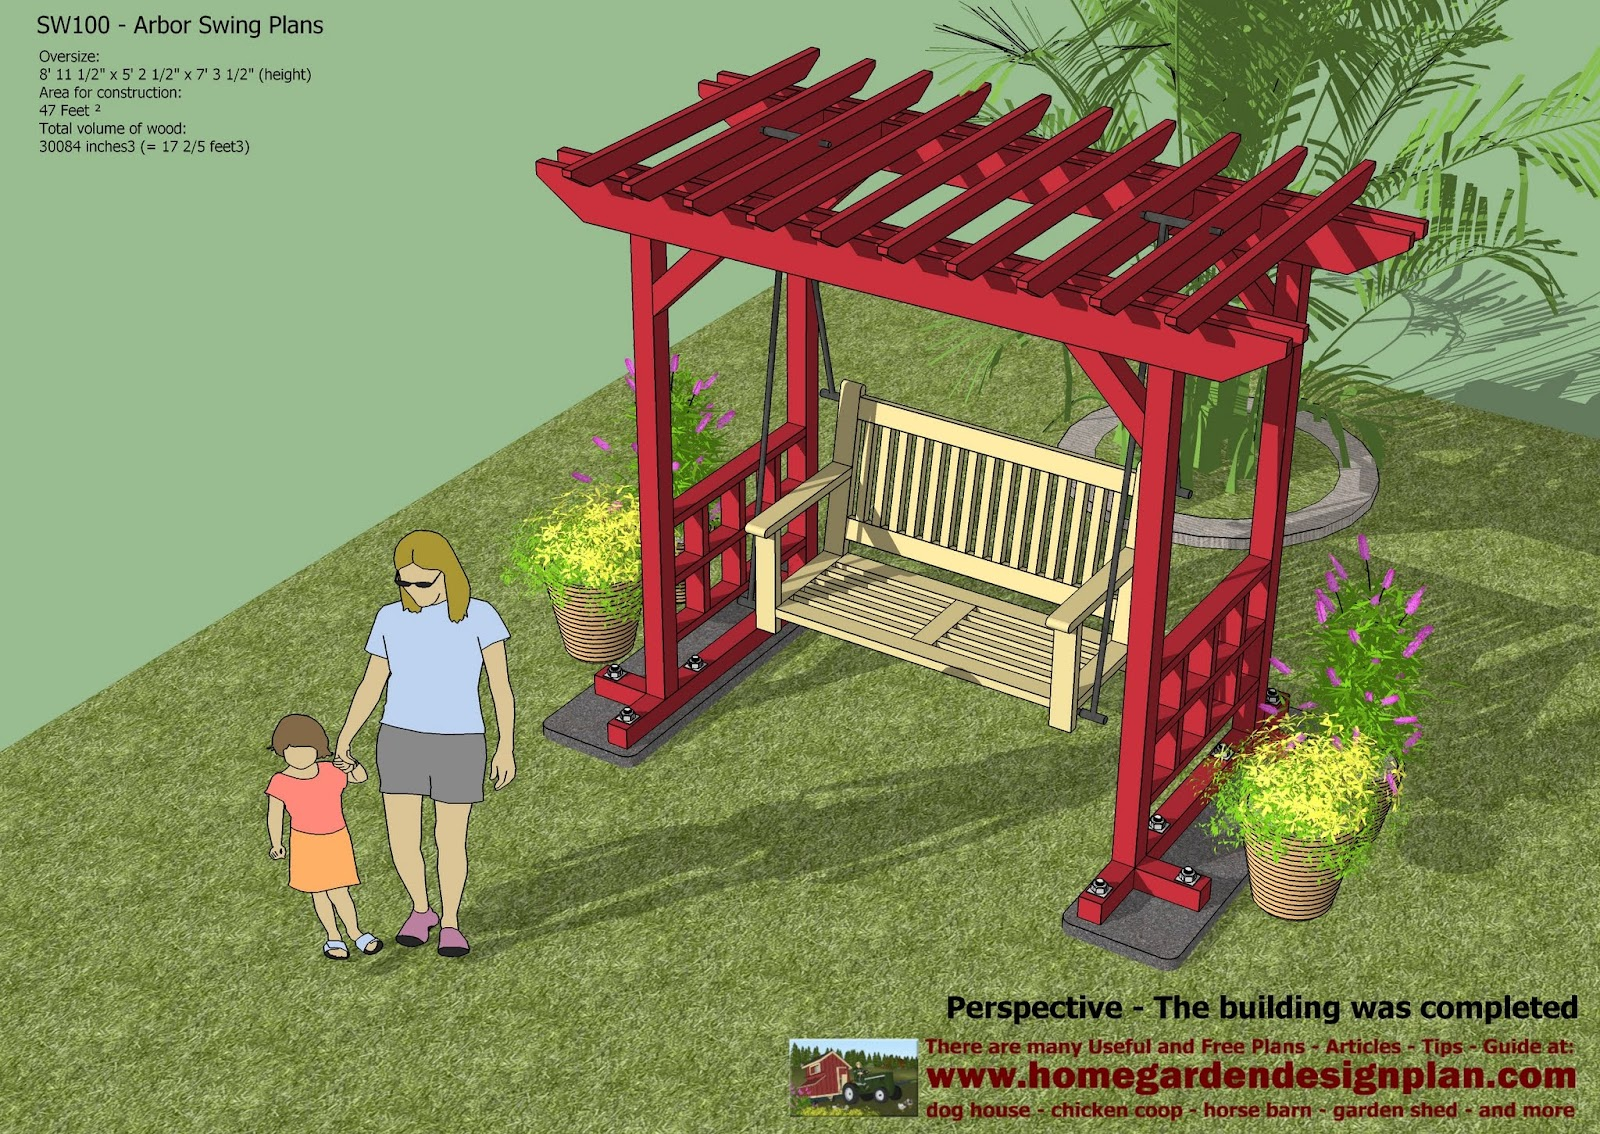 ... Arbor Swing Plans - Swing Woodworking Plans - Outdoor Furniture Plans